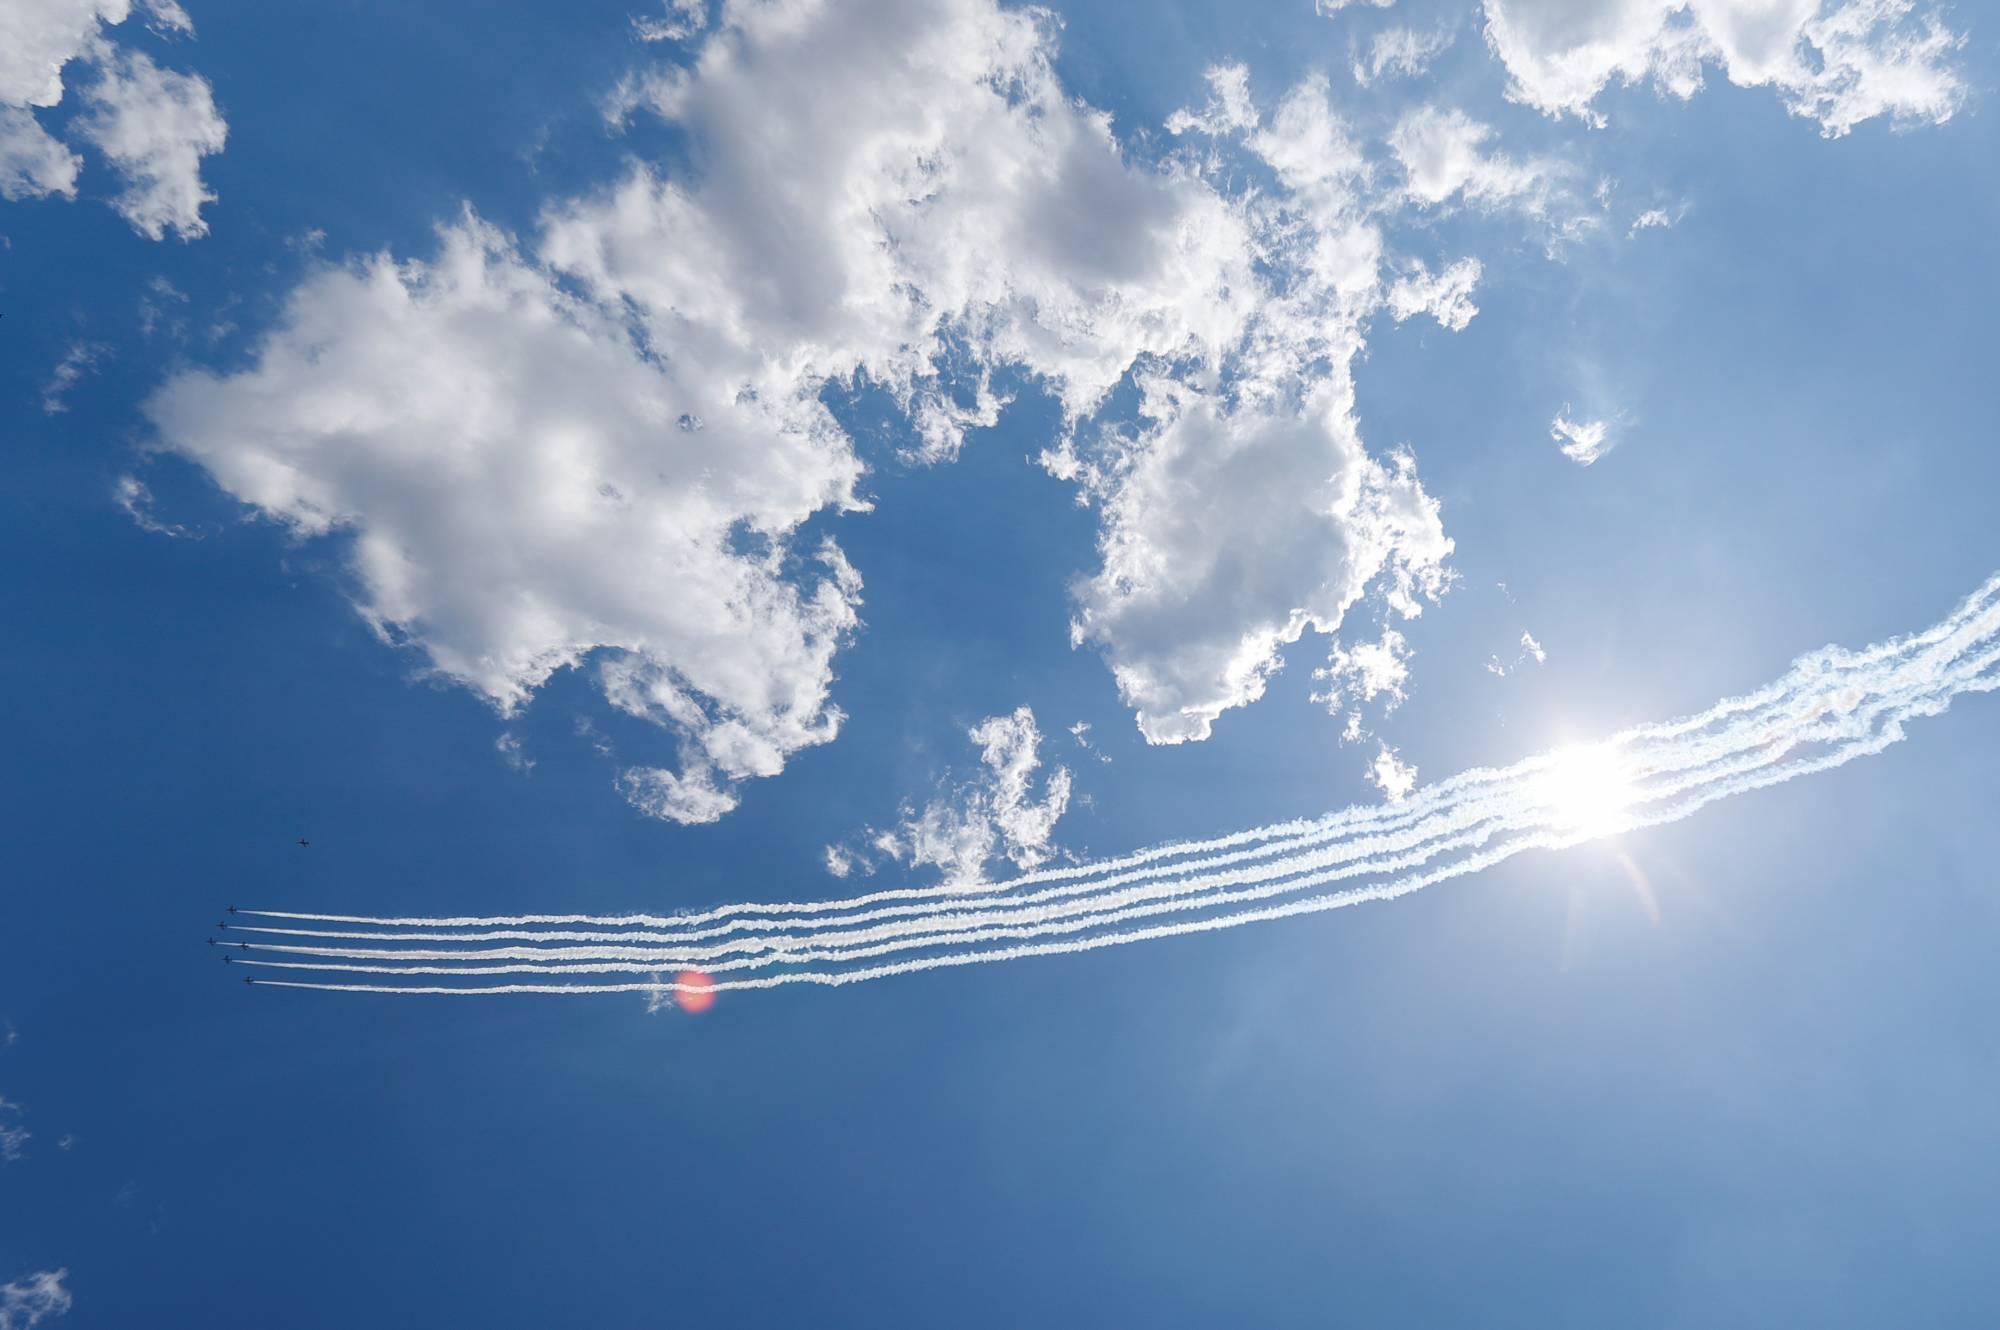 The Blue Impulse aerobatic team of the Air Self-Defense Force flies over the Self-Defense Forces Central Hospital to salute the medical workers at the front line of the fight against COVID-19 in Tokyo on May 29, 2020. | REUTERS